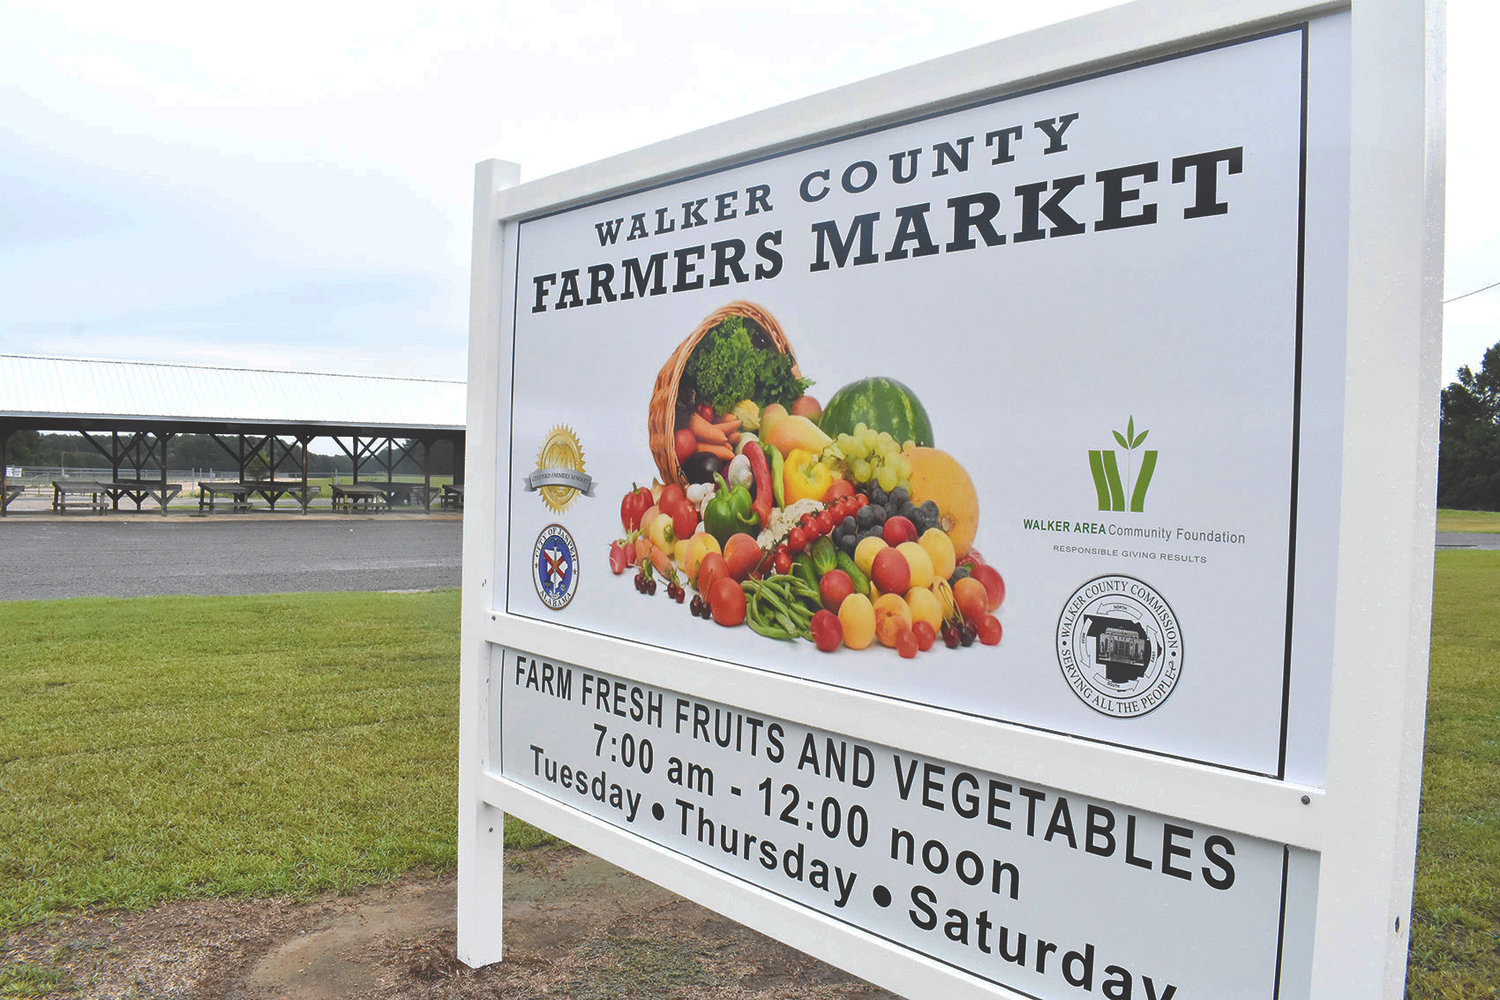 Strawberries returned to the Walker County Farmers Market this week, a small sign of normalcy in what is sure to be an unusual season for farmers and customers.